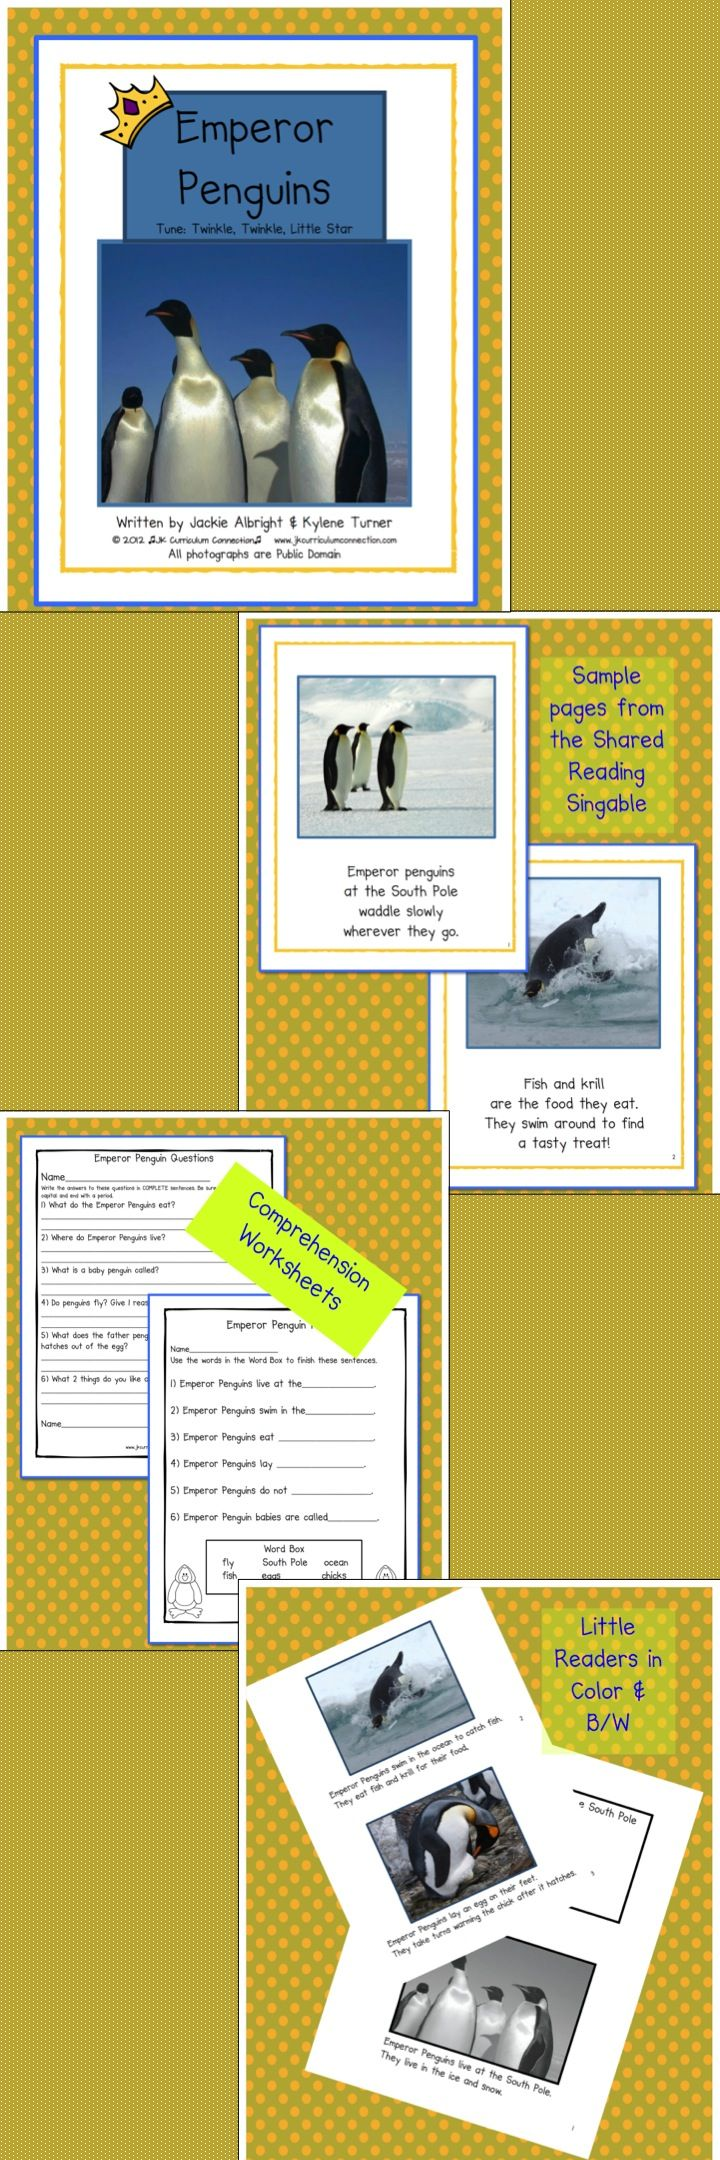 Emperor Penguins is a Shared Reading singable book that uses photos as the illustrations. This non-fiction songbook is sung to the familiar tune Twinkle, Twinkle, Little Star.  Children love learning new vocabulary words and interesting facts about these colorful birds from Antarctica.  40 pages for $5.75 http://www.teacherspayteachers.com/Product/Emperor-Penguins-Non-fiction-Shared-Reading-Singable-190823